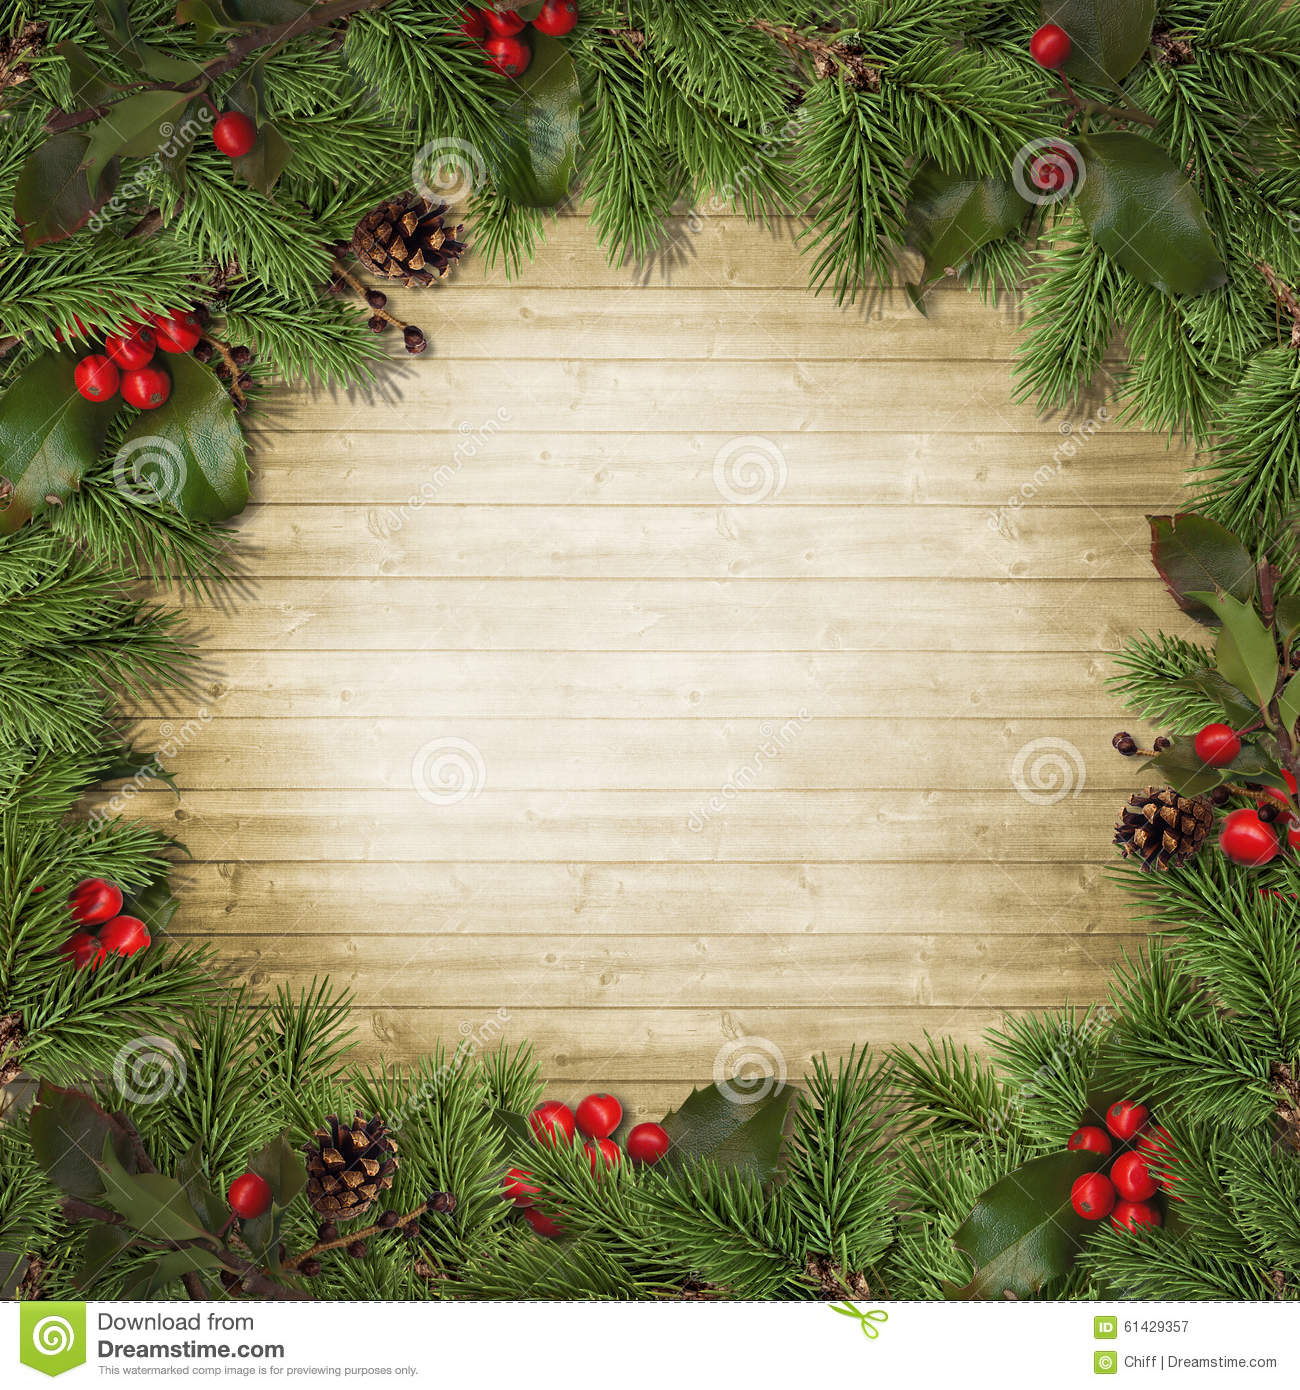 Christmas tree branches and holly on wooden board stock for Fir cone christmas tree decorations